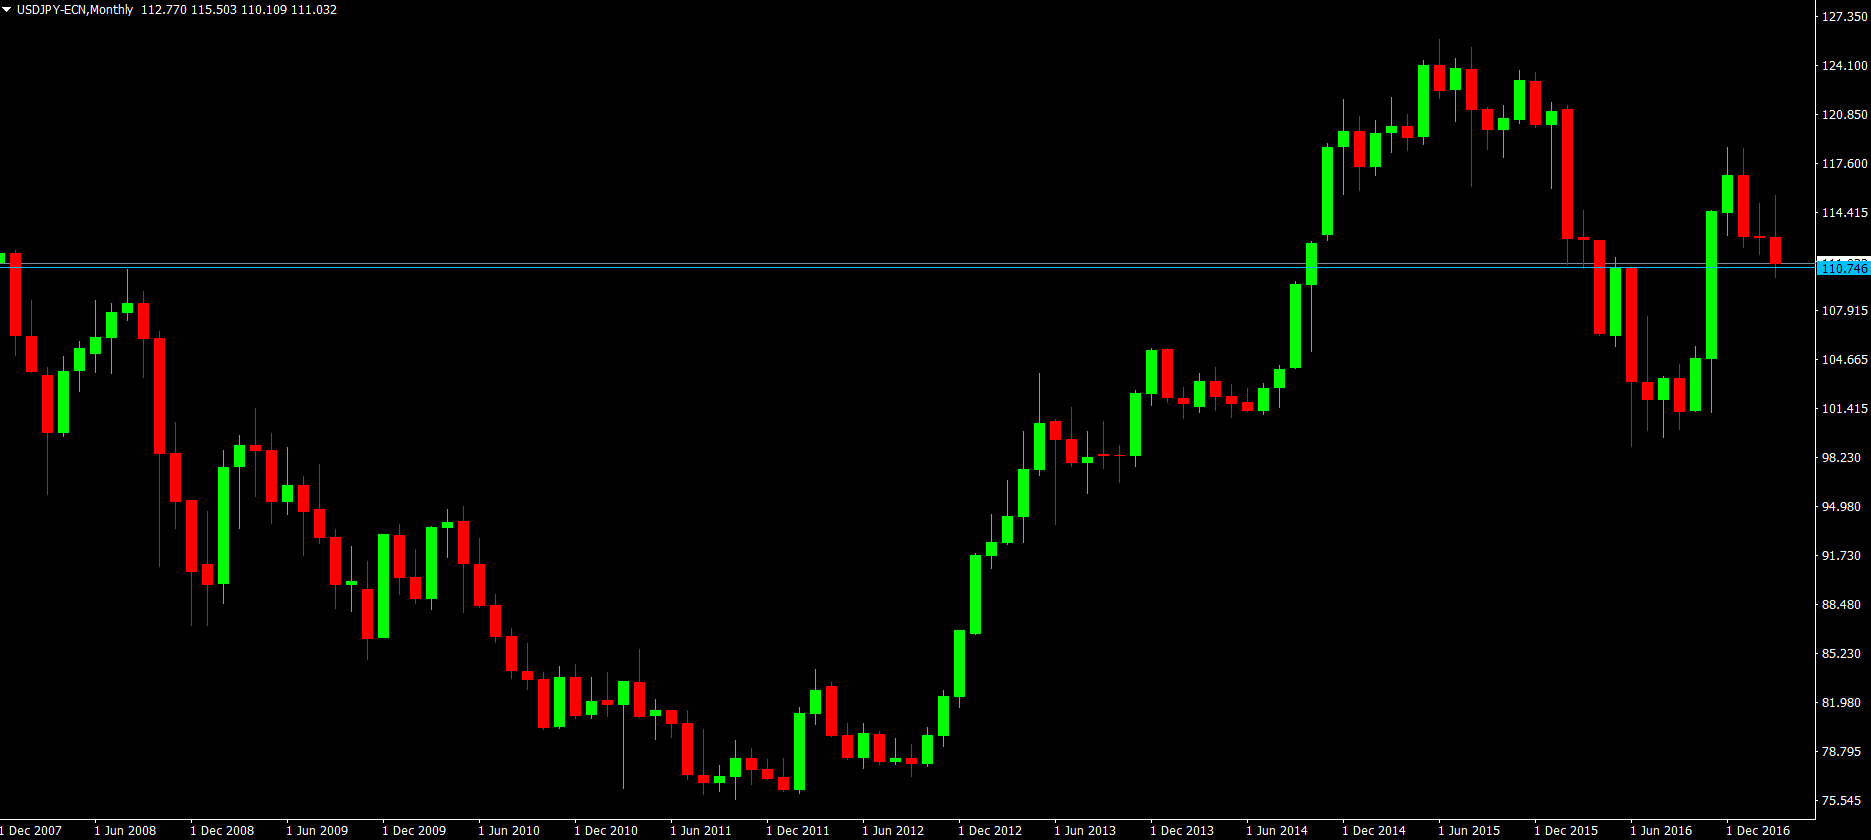 USD/JPY, Monthly